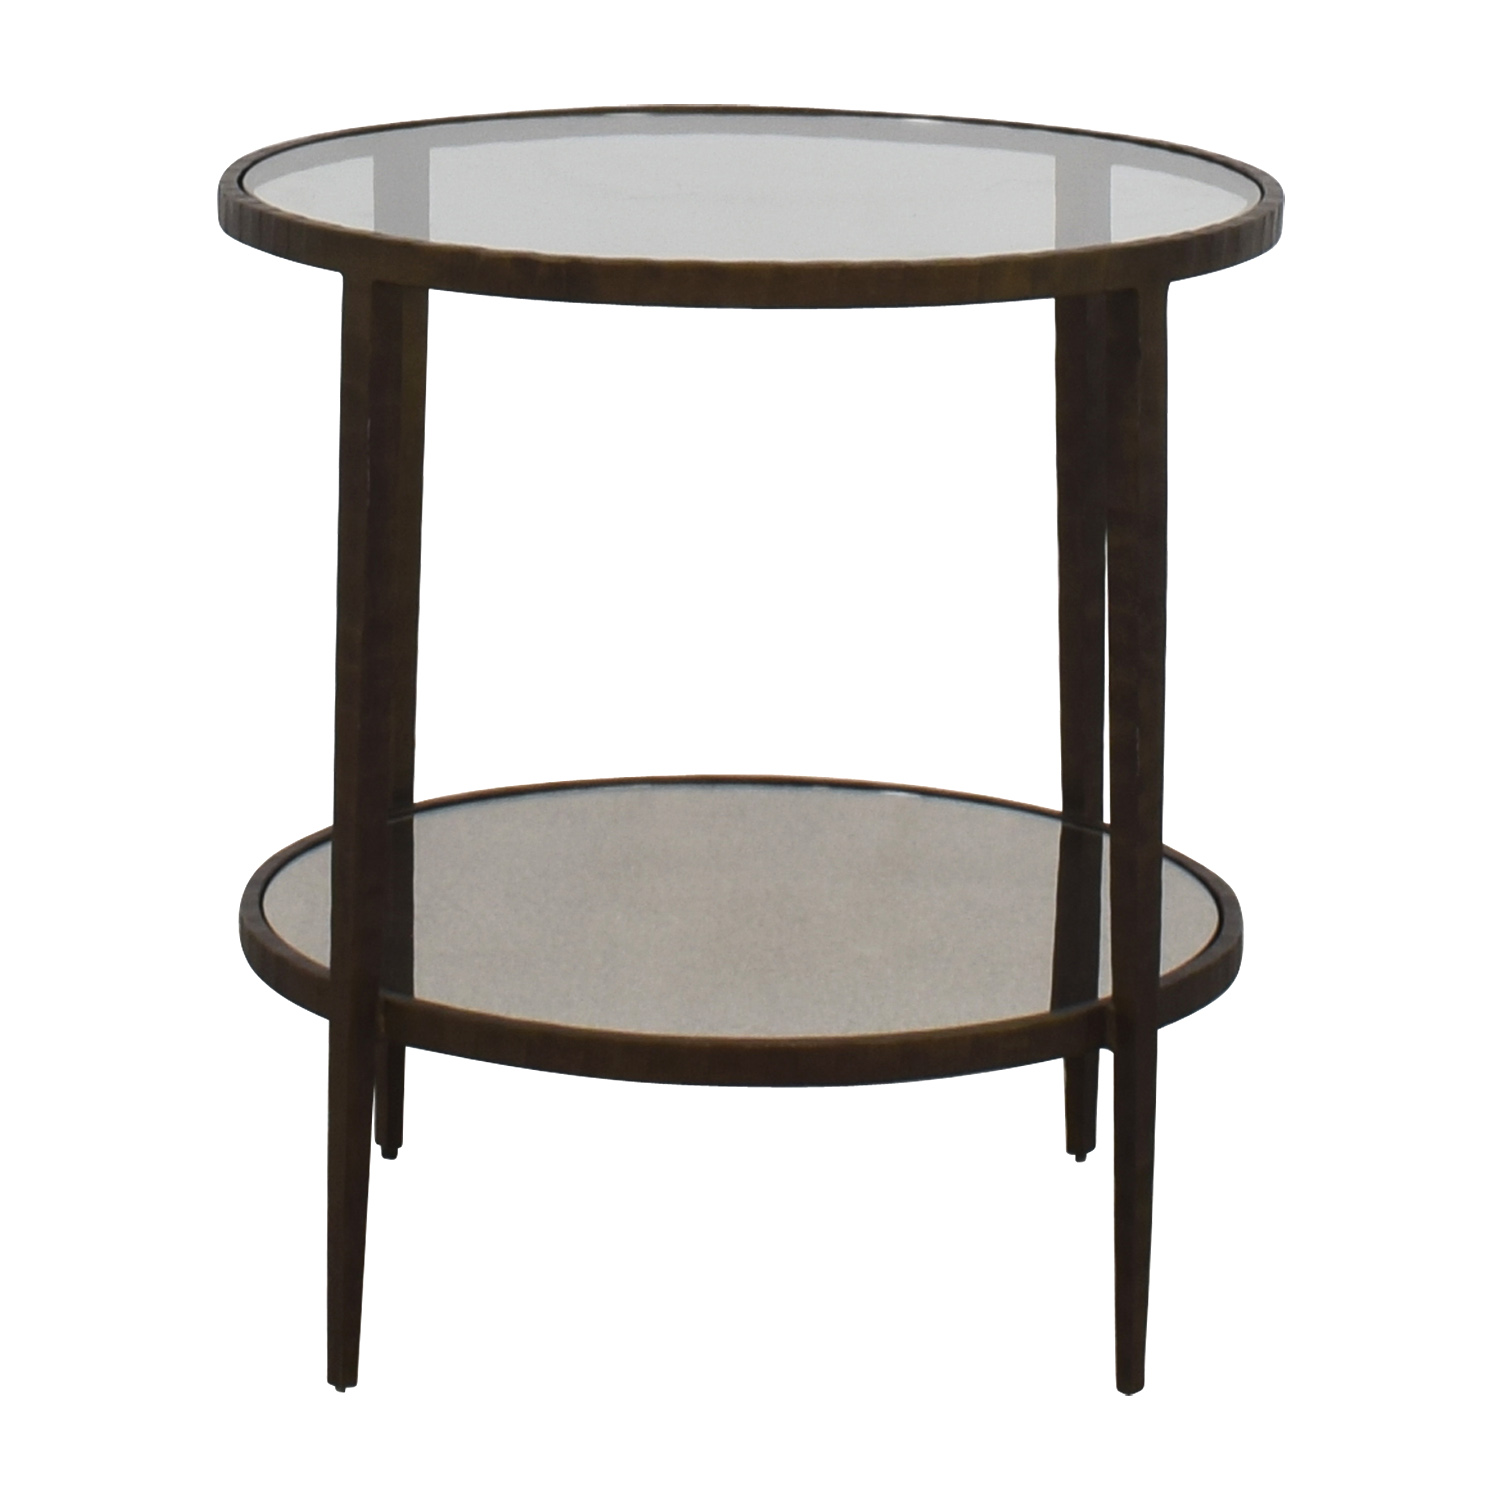 shop Crate & Barrel Crate & Barrel Claremont Round Glass and Mirrored Side Table online